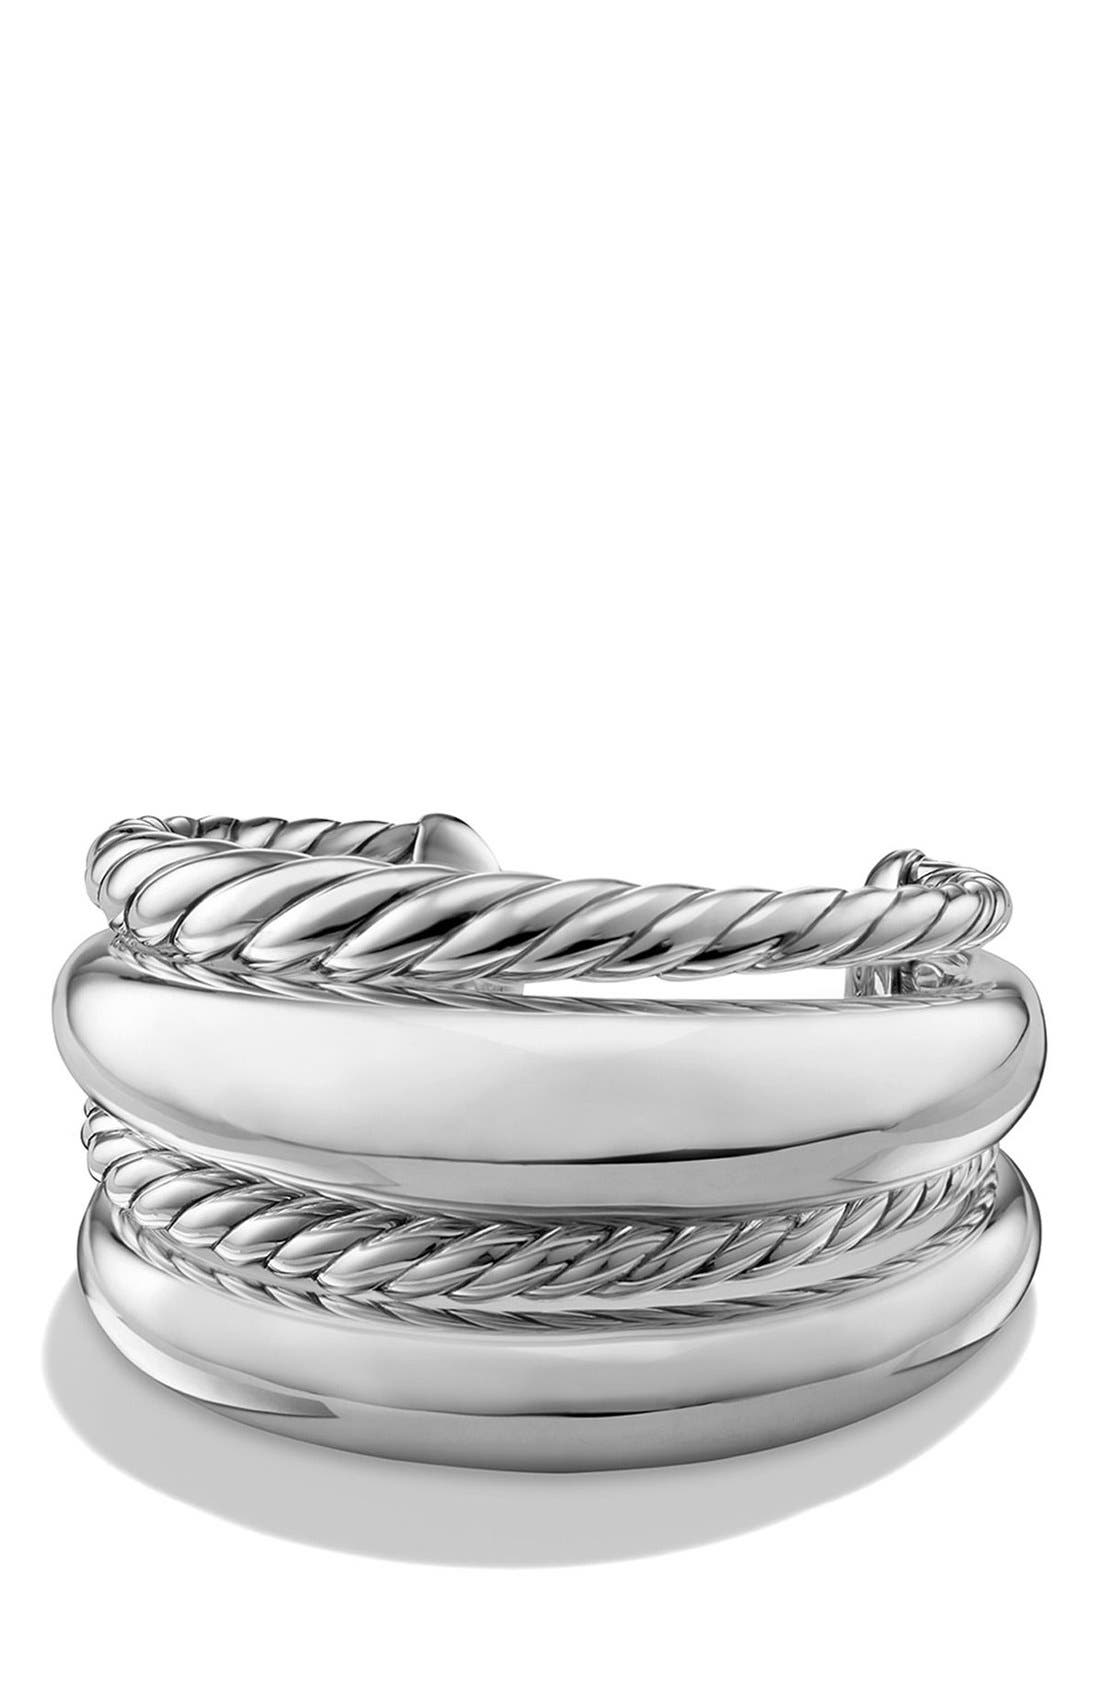 Main Image - David Yurman 'Pure Form' Four-Row Sterling Silver Cuff